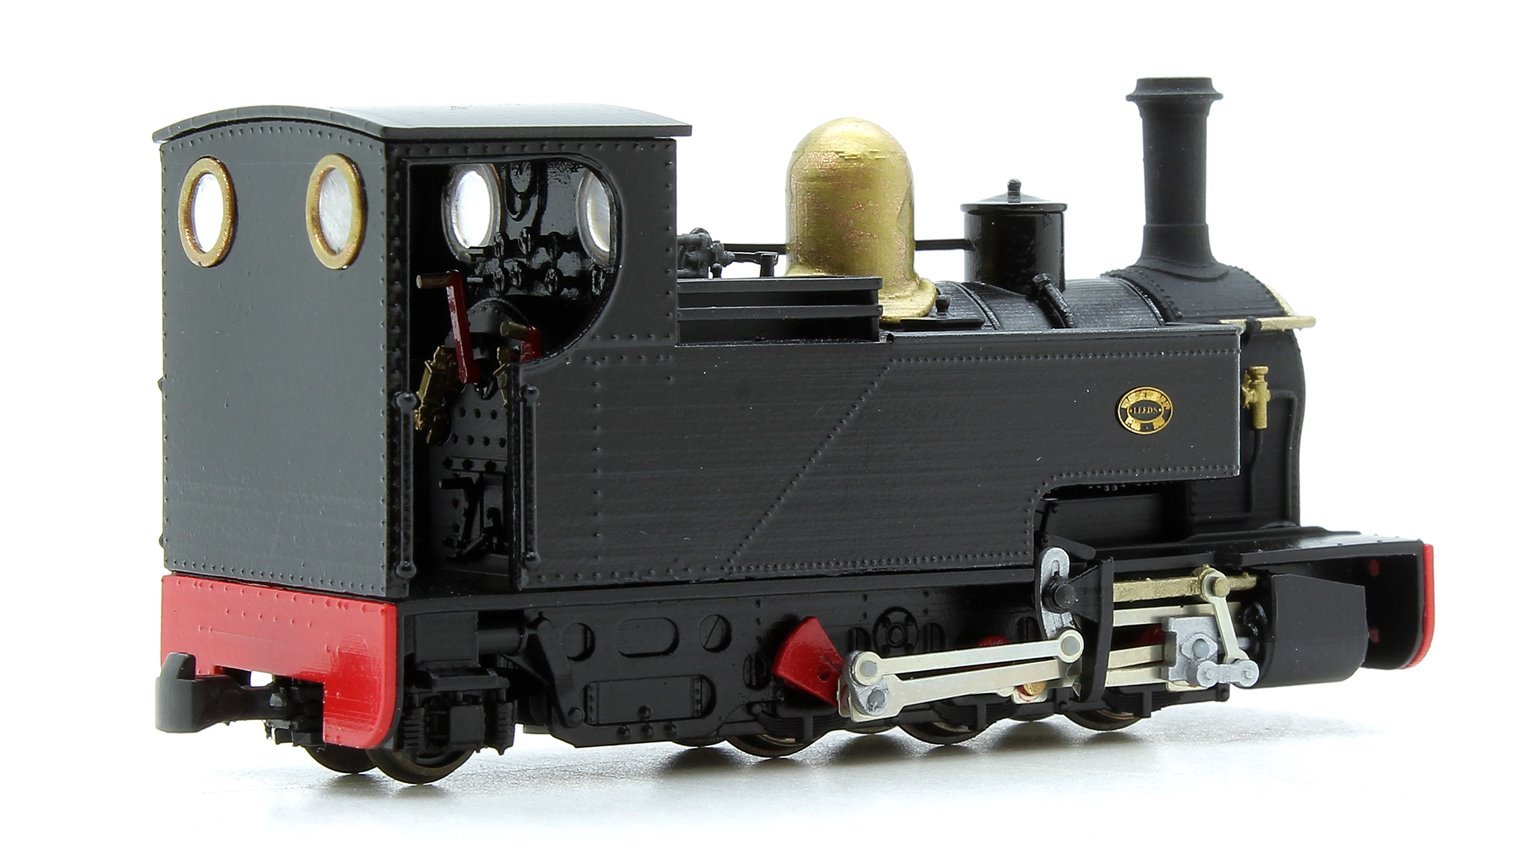 Fourdees Limited OO9 Scale 41-133 Leeds No.1 Black Freelance 0-6-2T Locomotive